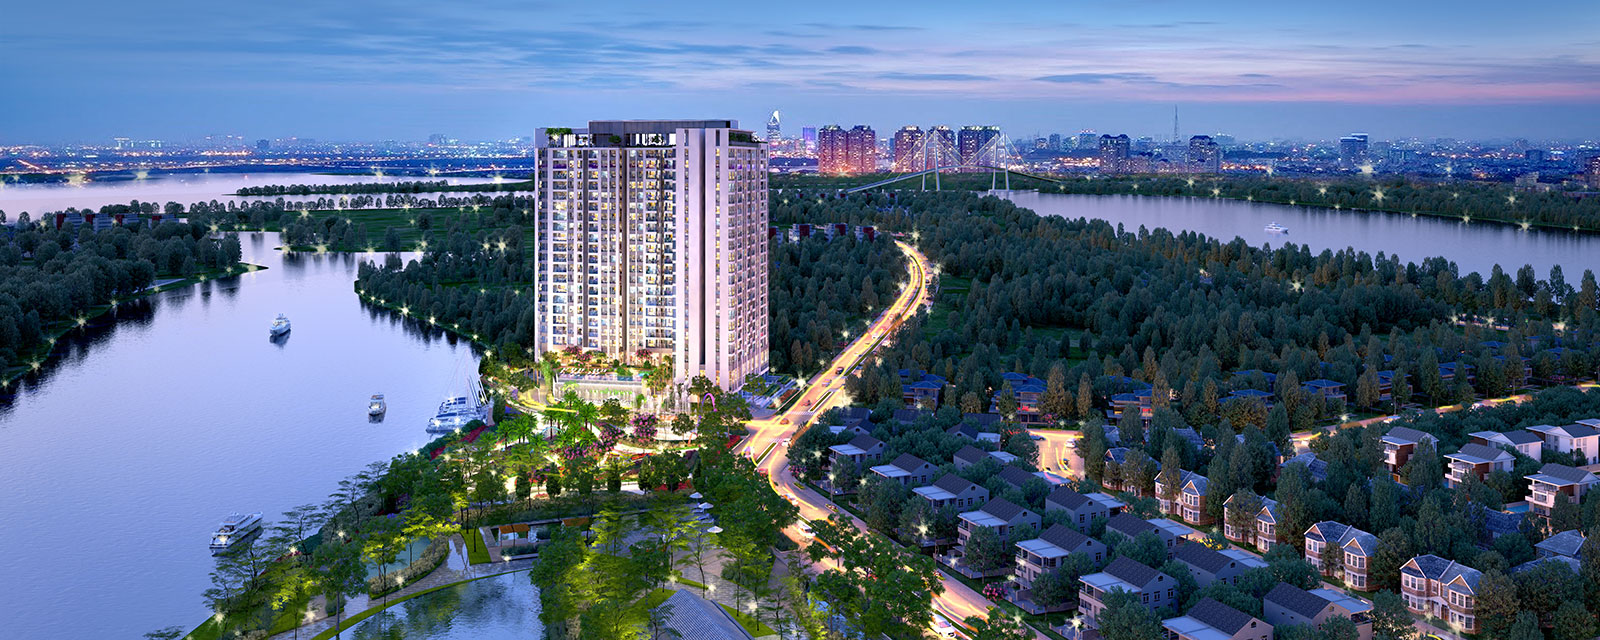 Constantly striving to reach the target of a leading real estate investment company in Ho Chi Minh City